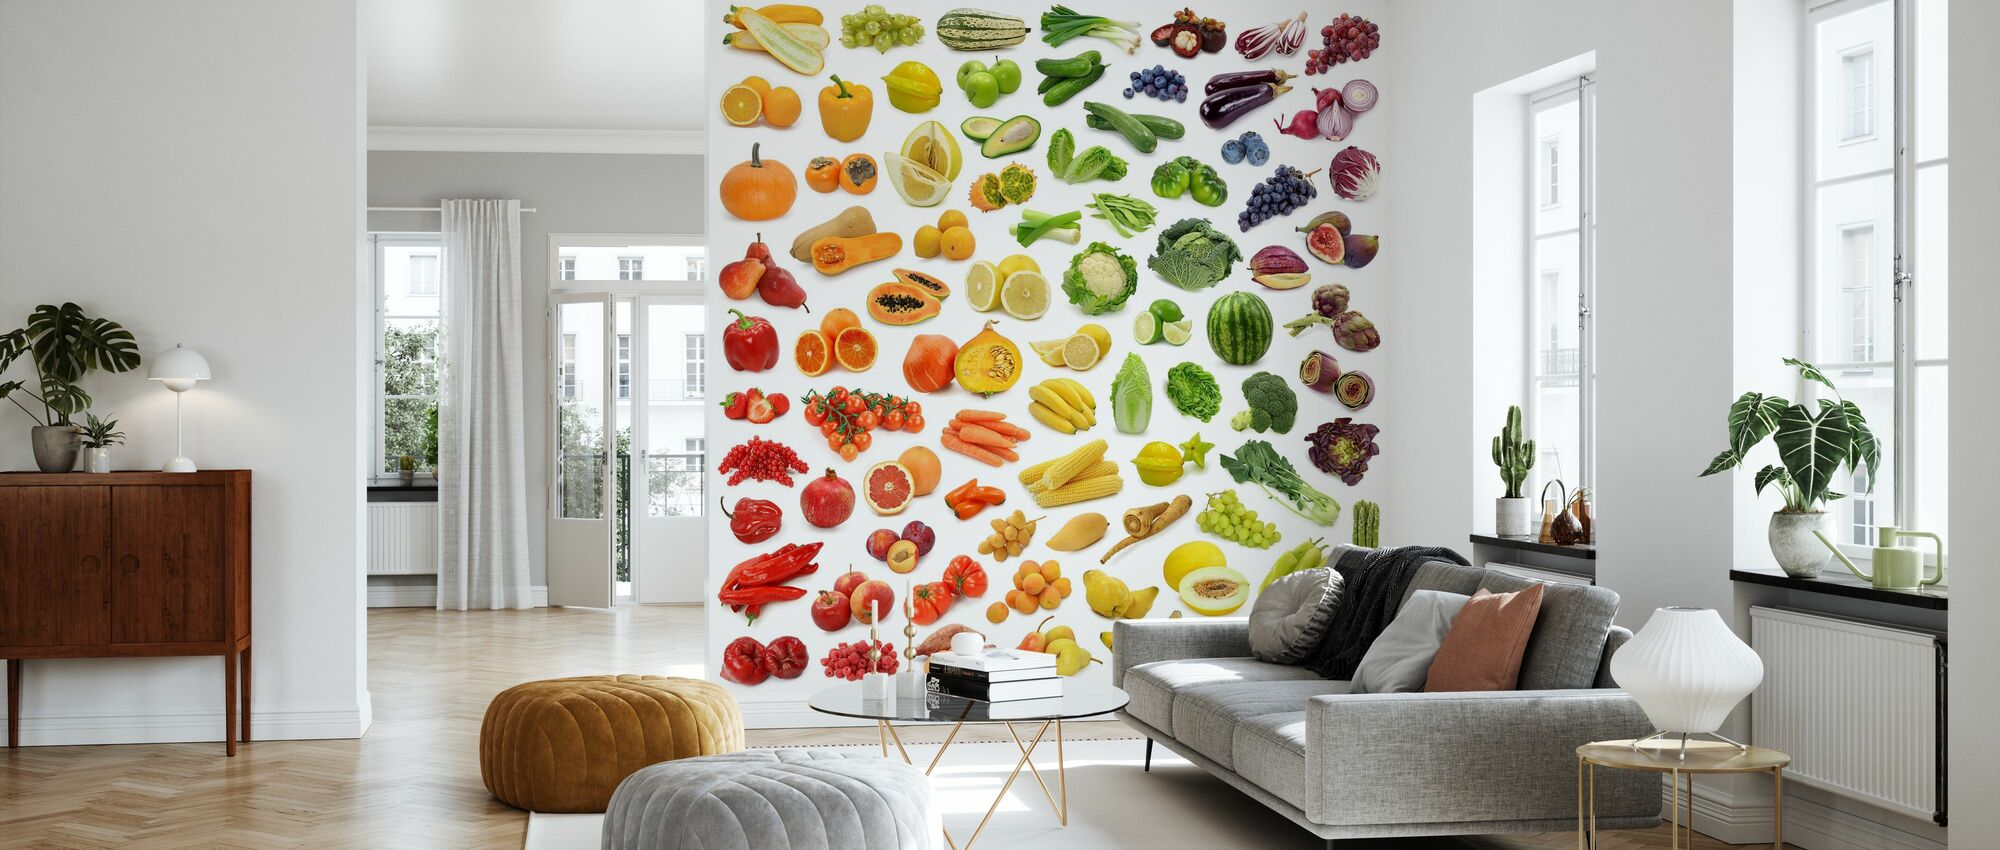 Juicy Fruits - Wallpaper - Living Room